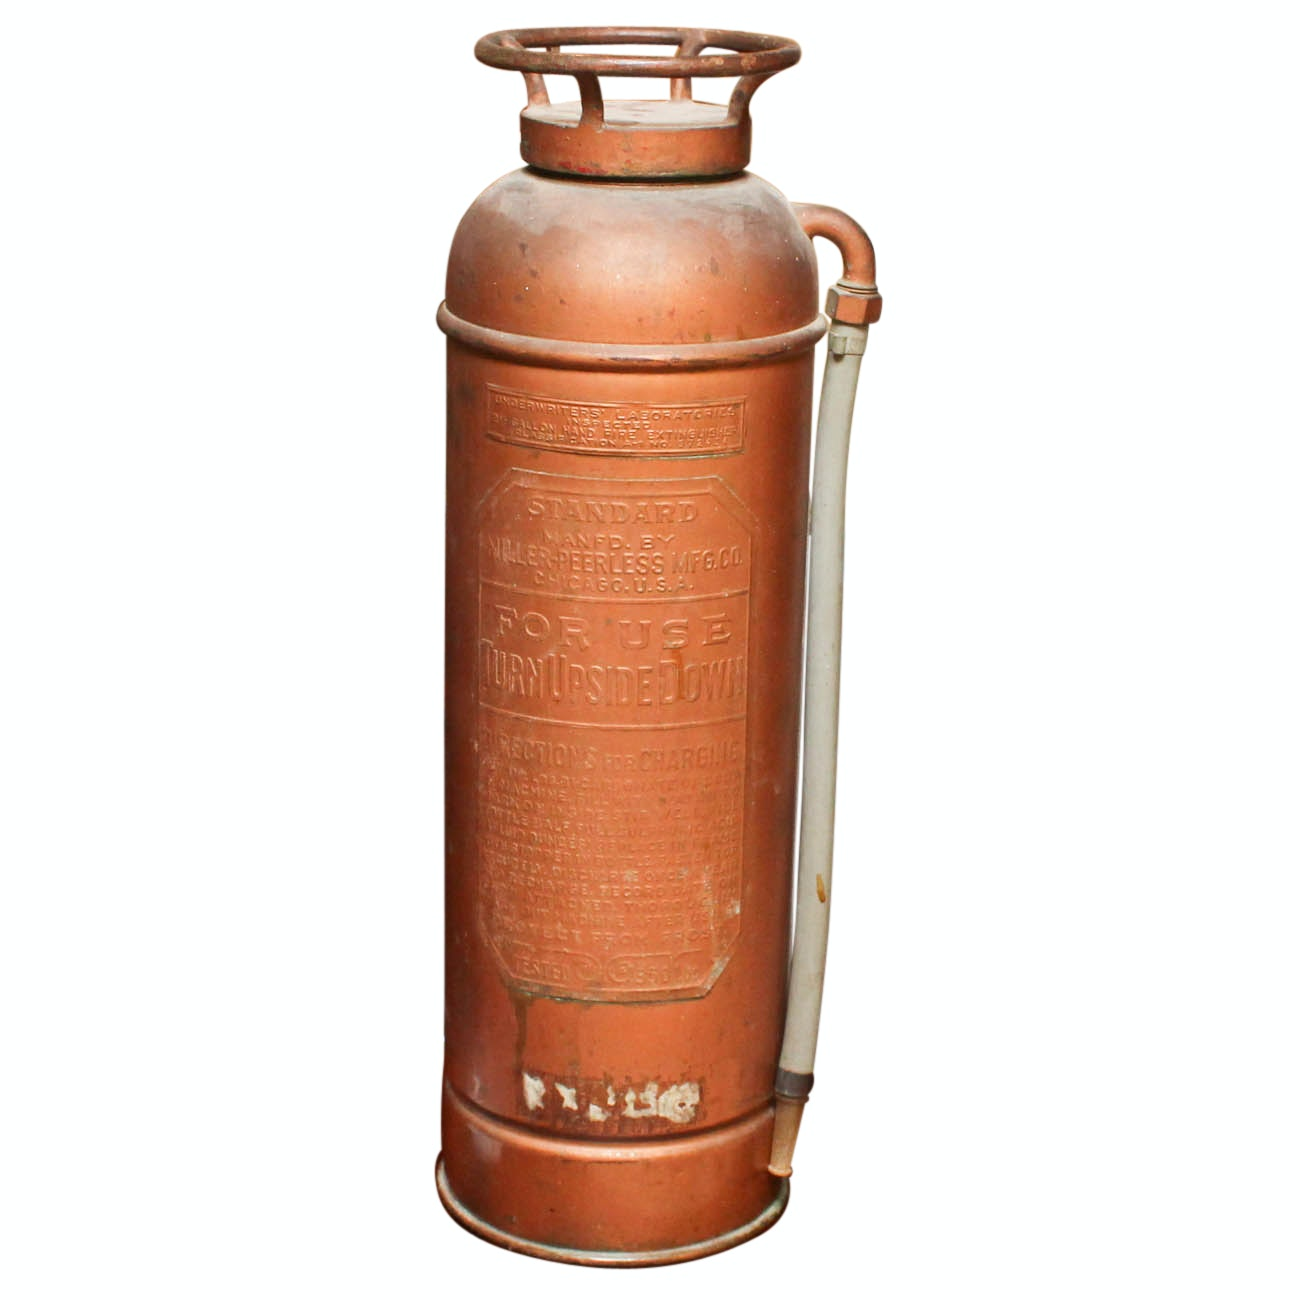 Antique Copper Miller-Peerless Fire Extinguisher